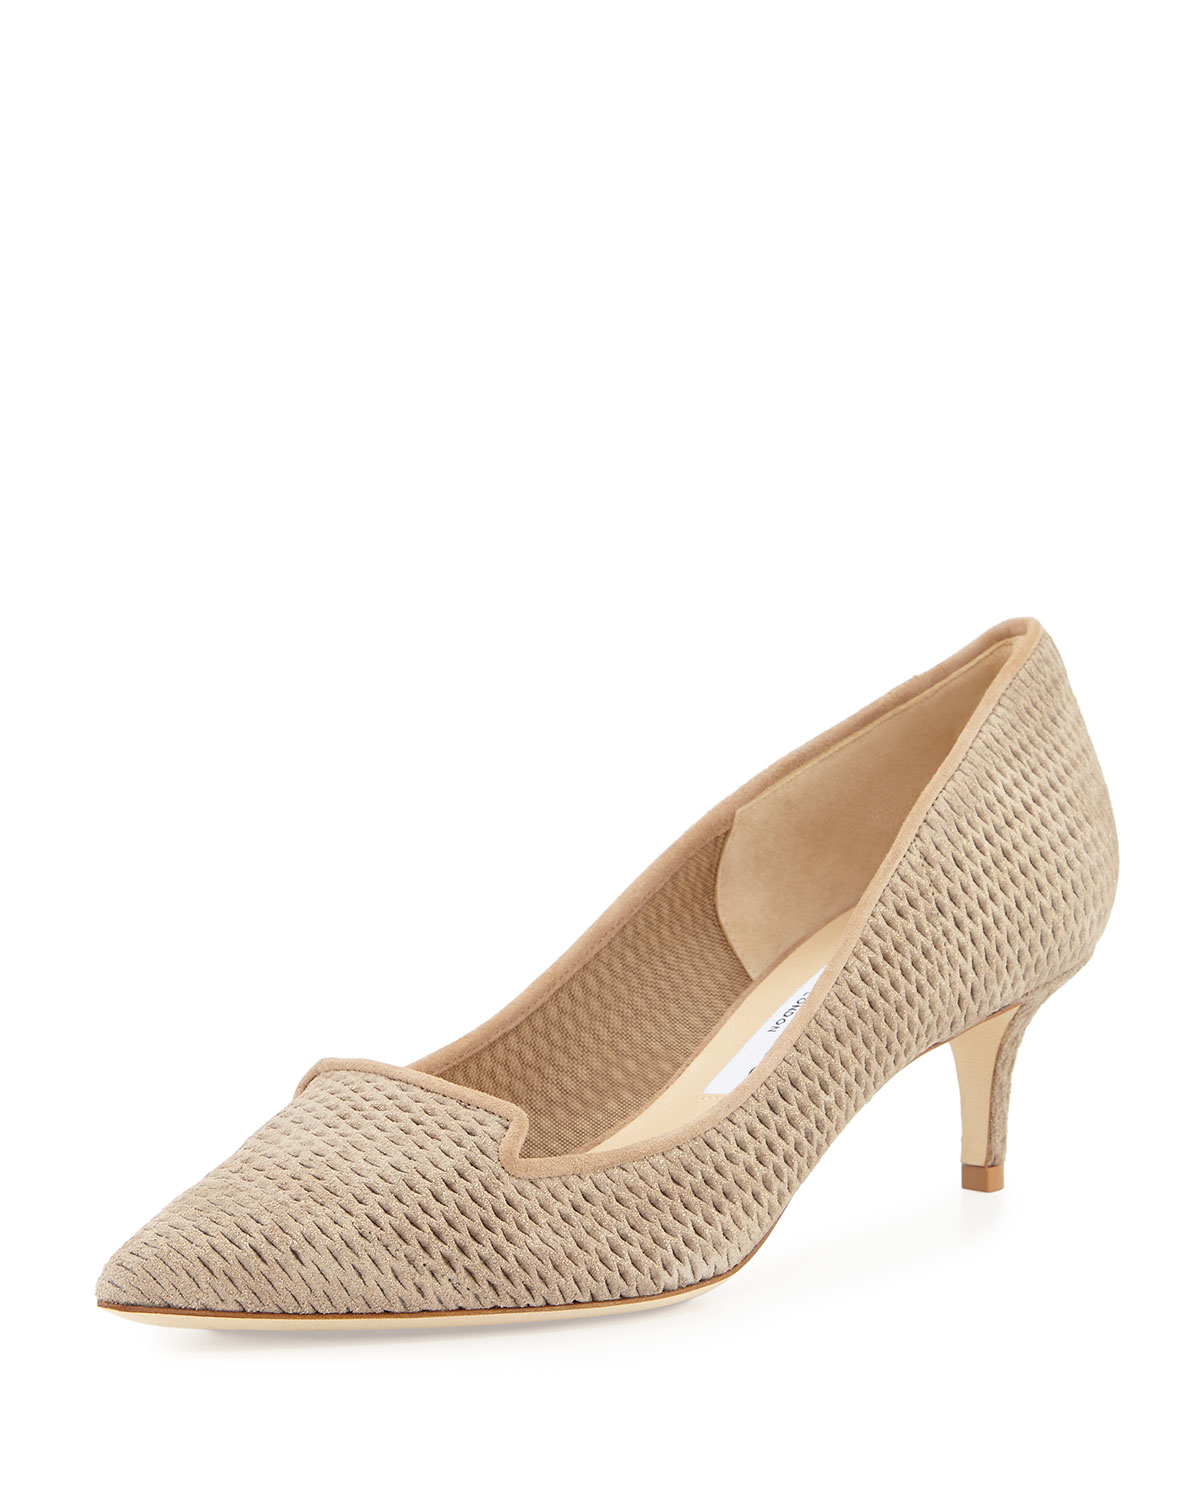 650218b3576 Jimmy Choo Allure Suede Kitten-Heel Pump